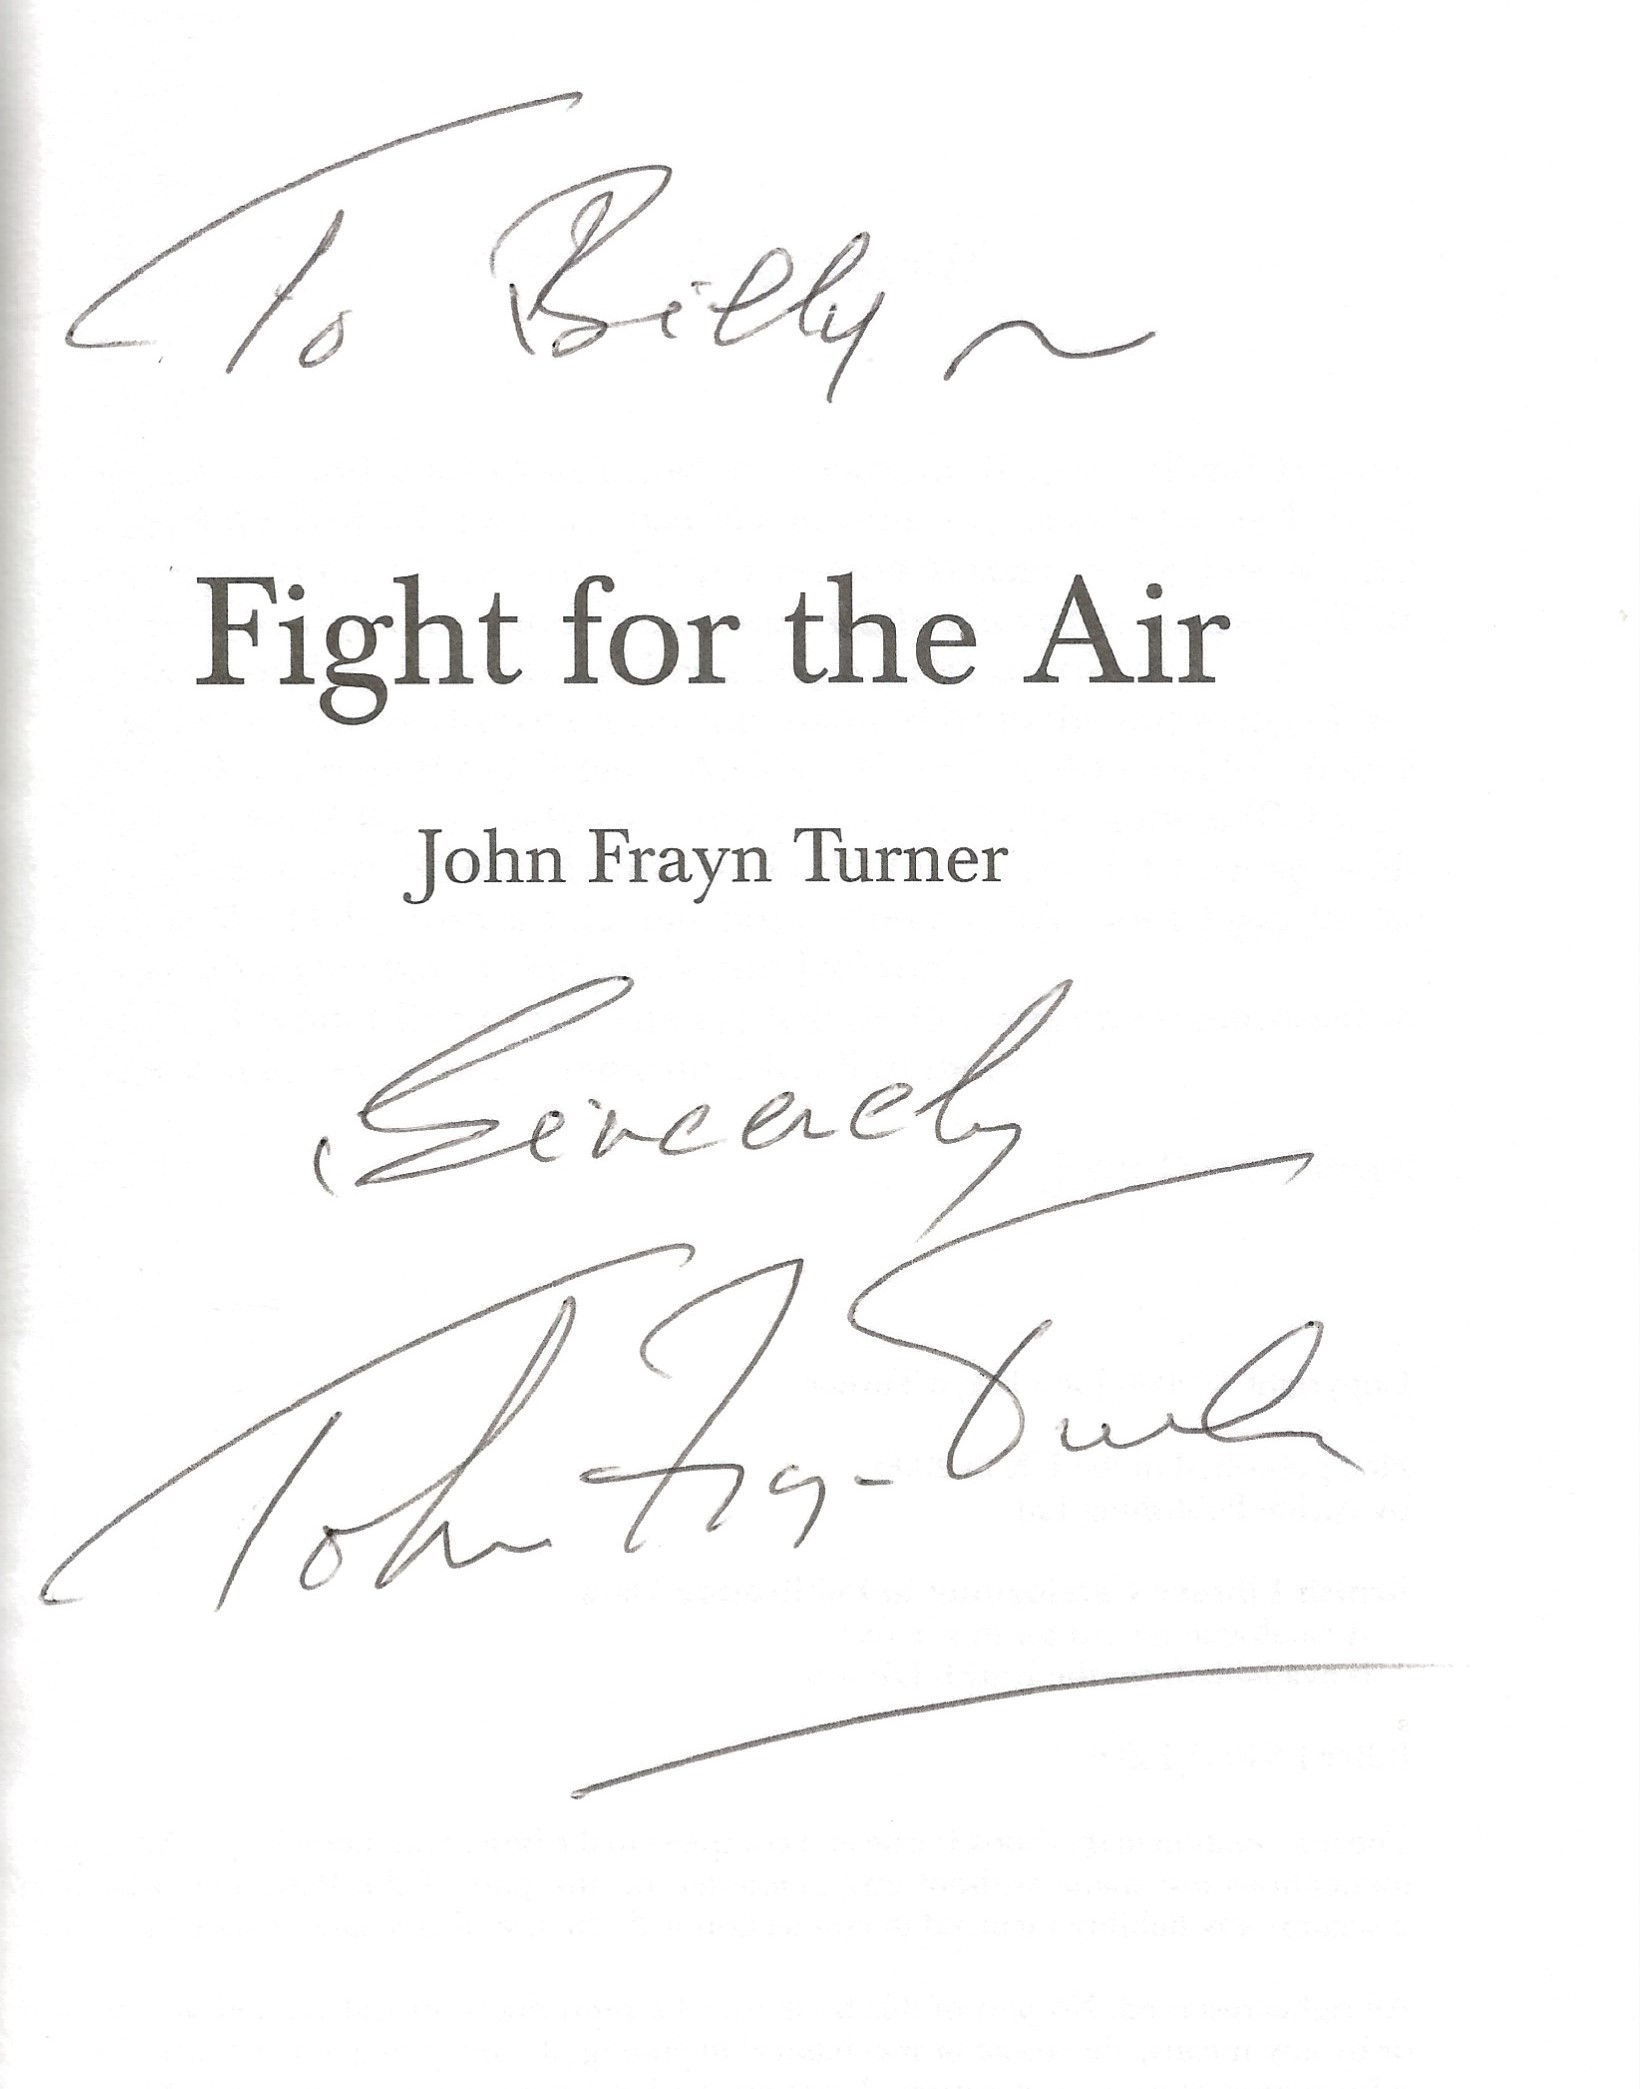 John Frayn Turner. Fight For The Air, Air Battles Of WW2. A First Edition hardback book in good